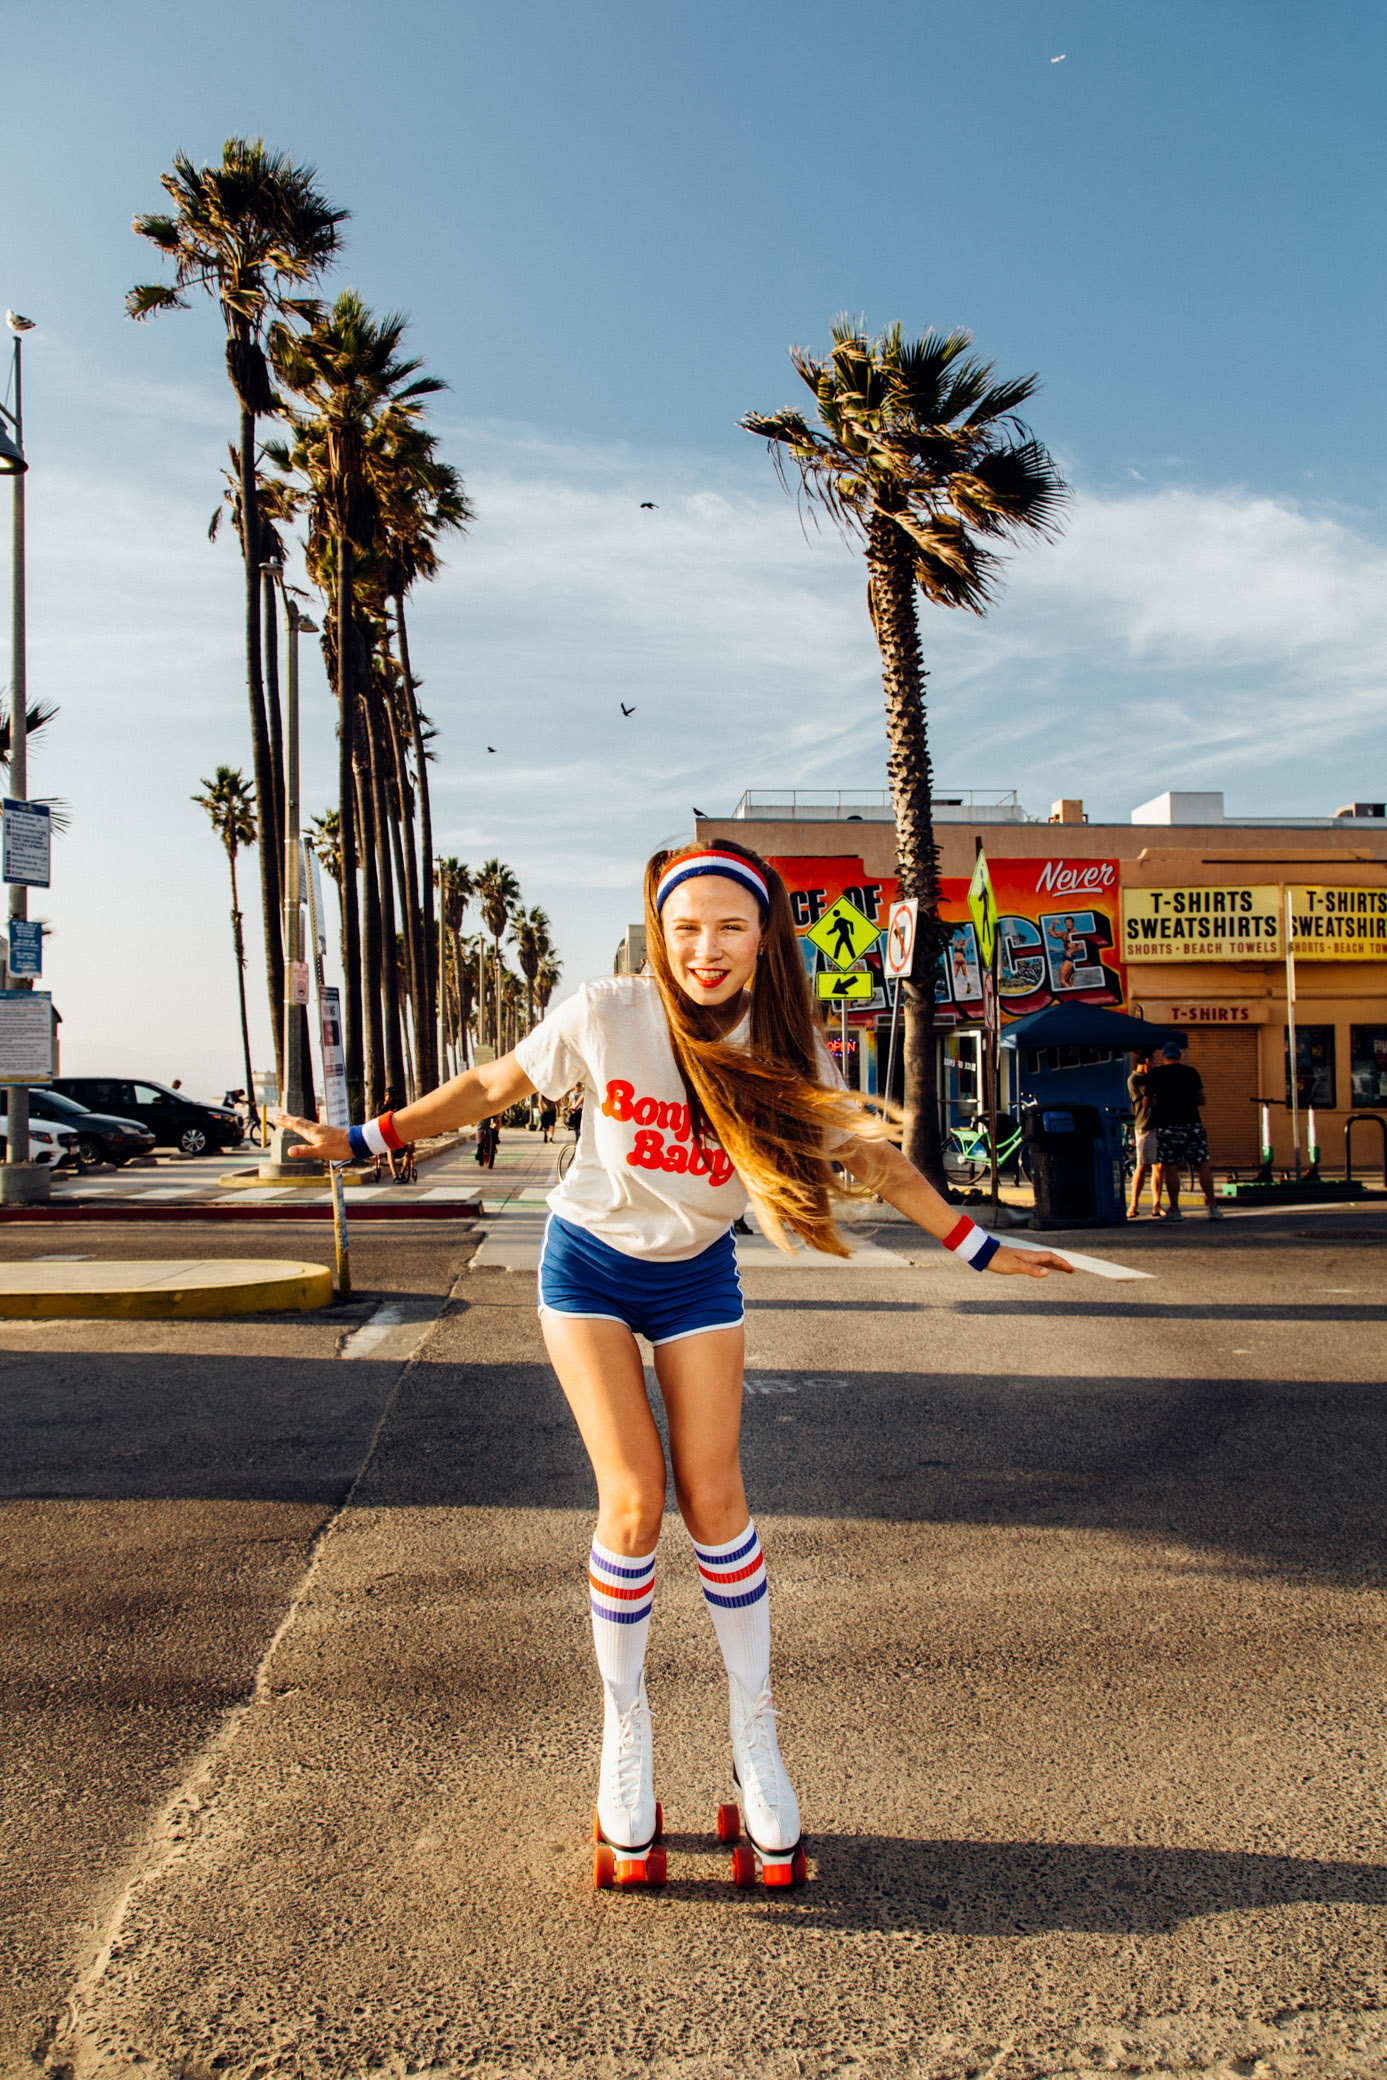 Roller girl. Summer shoot in LA